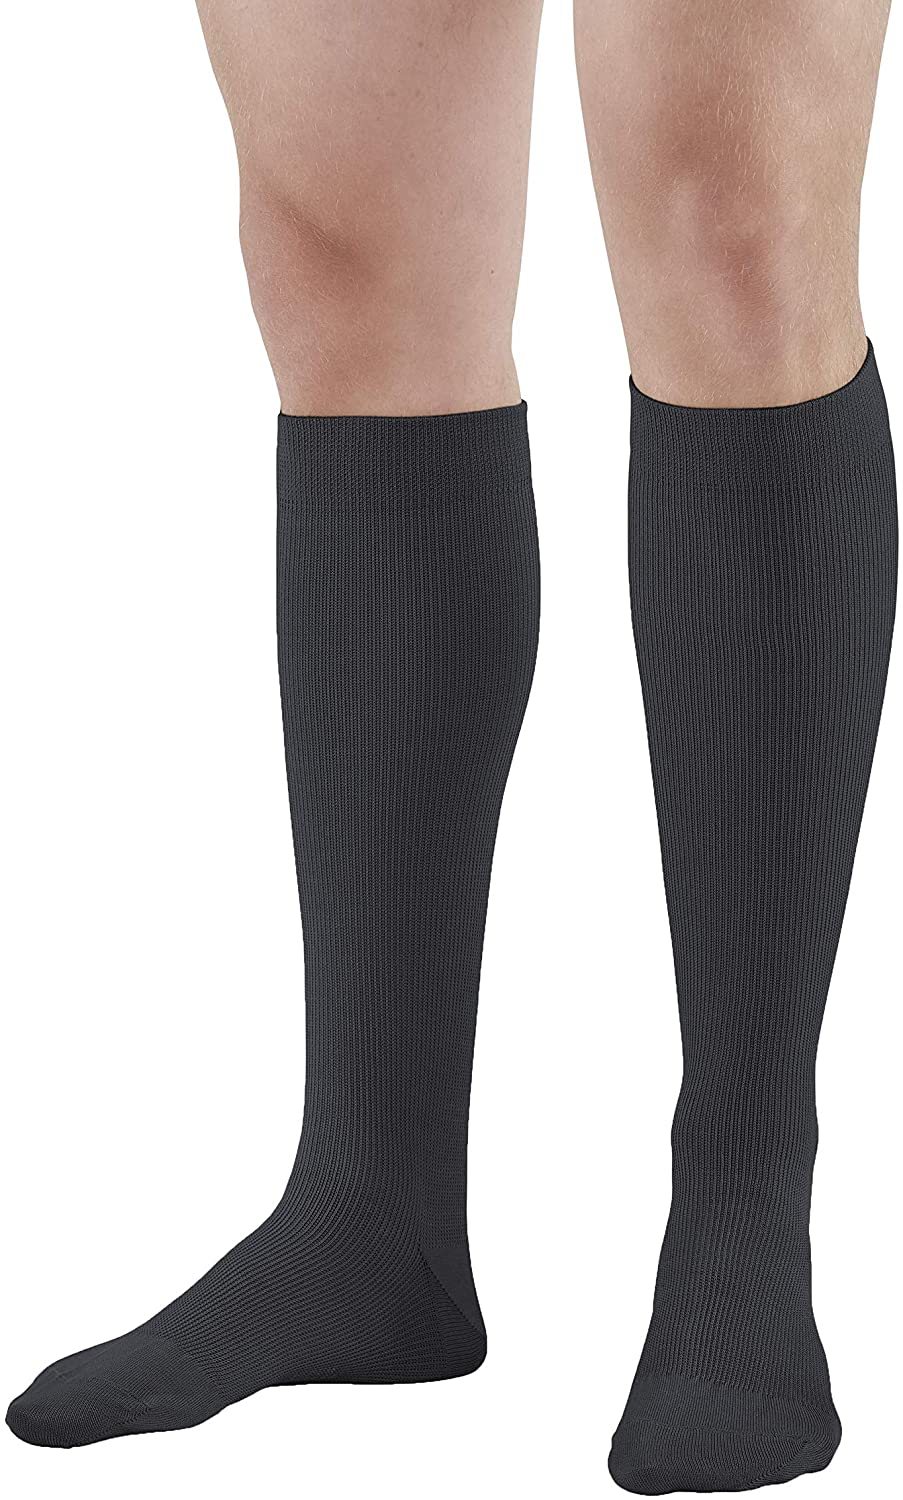 Ames Walker AW Style 111W Cotton Firm 20 30mmHg Knee High Socks Black Large Wide